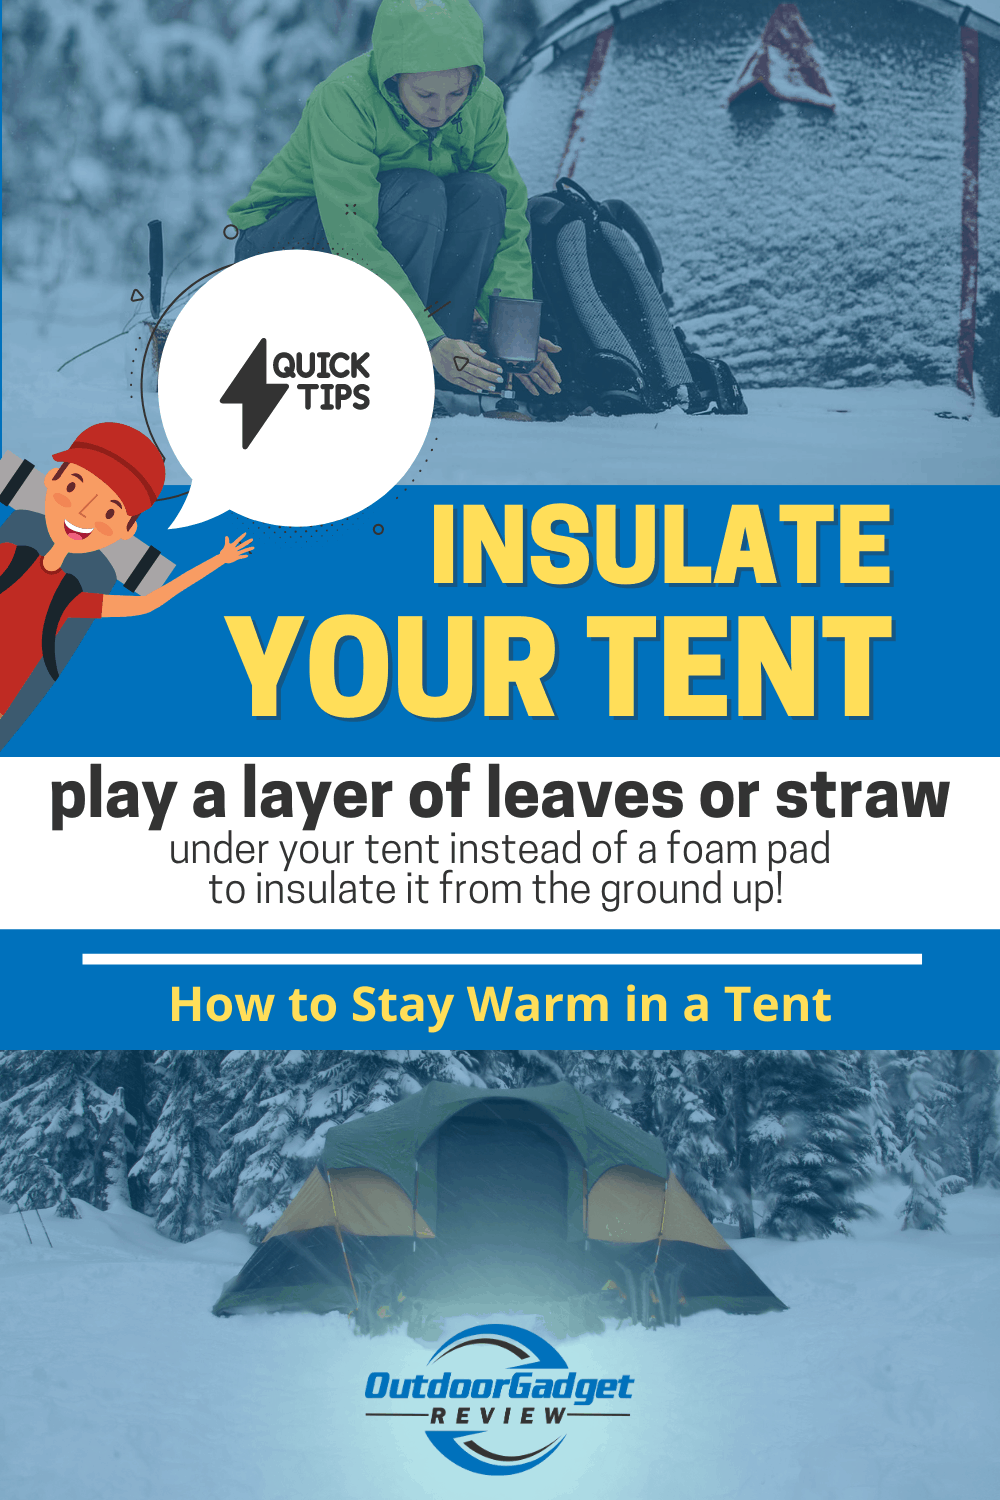 HOW TO STAY WARM IN A TENT (2)